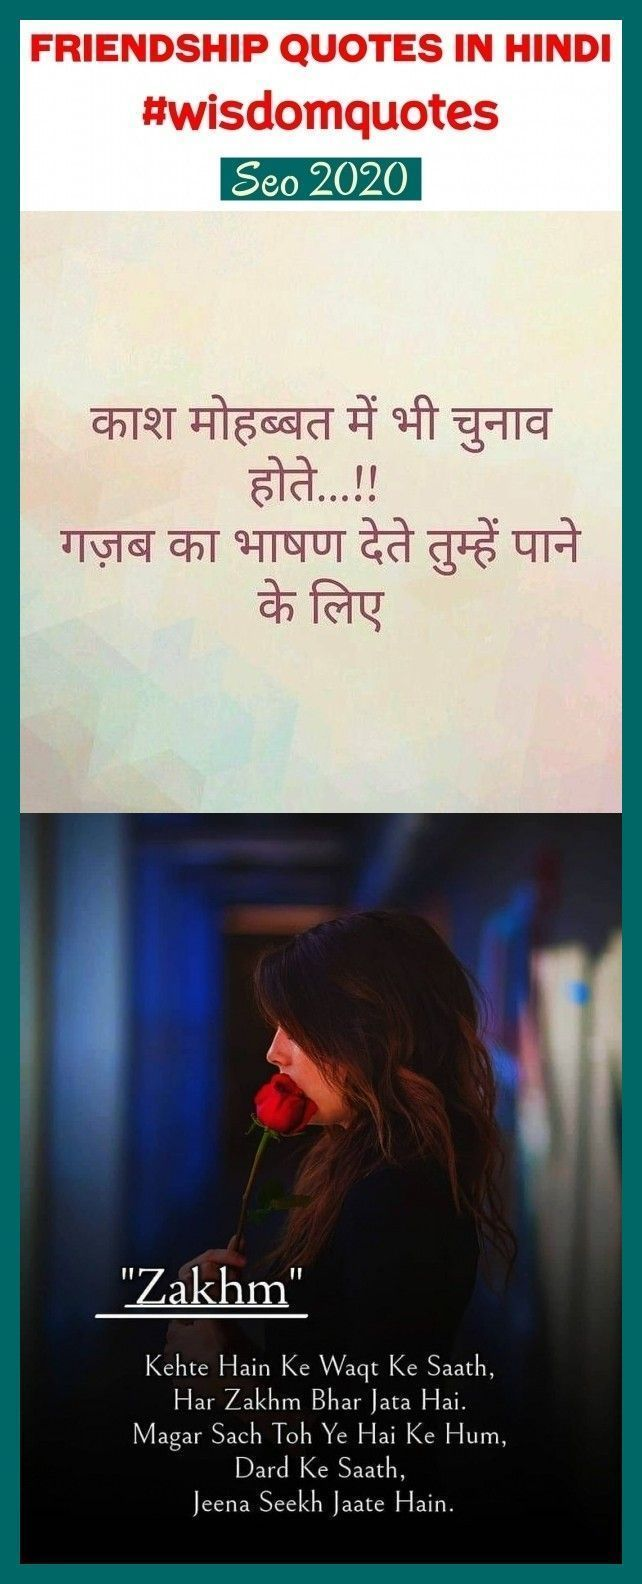 Quote On Friendship In Hindi Quote On Friendship Friendship Hindi Quote In 2020 Friendship Quotes Friendship Quotes Funny Friendship Quotes In Hindi